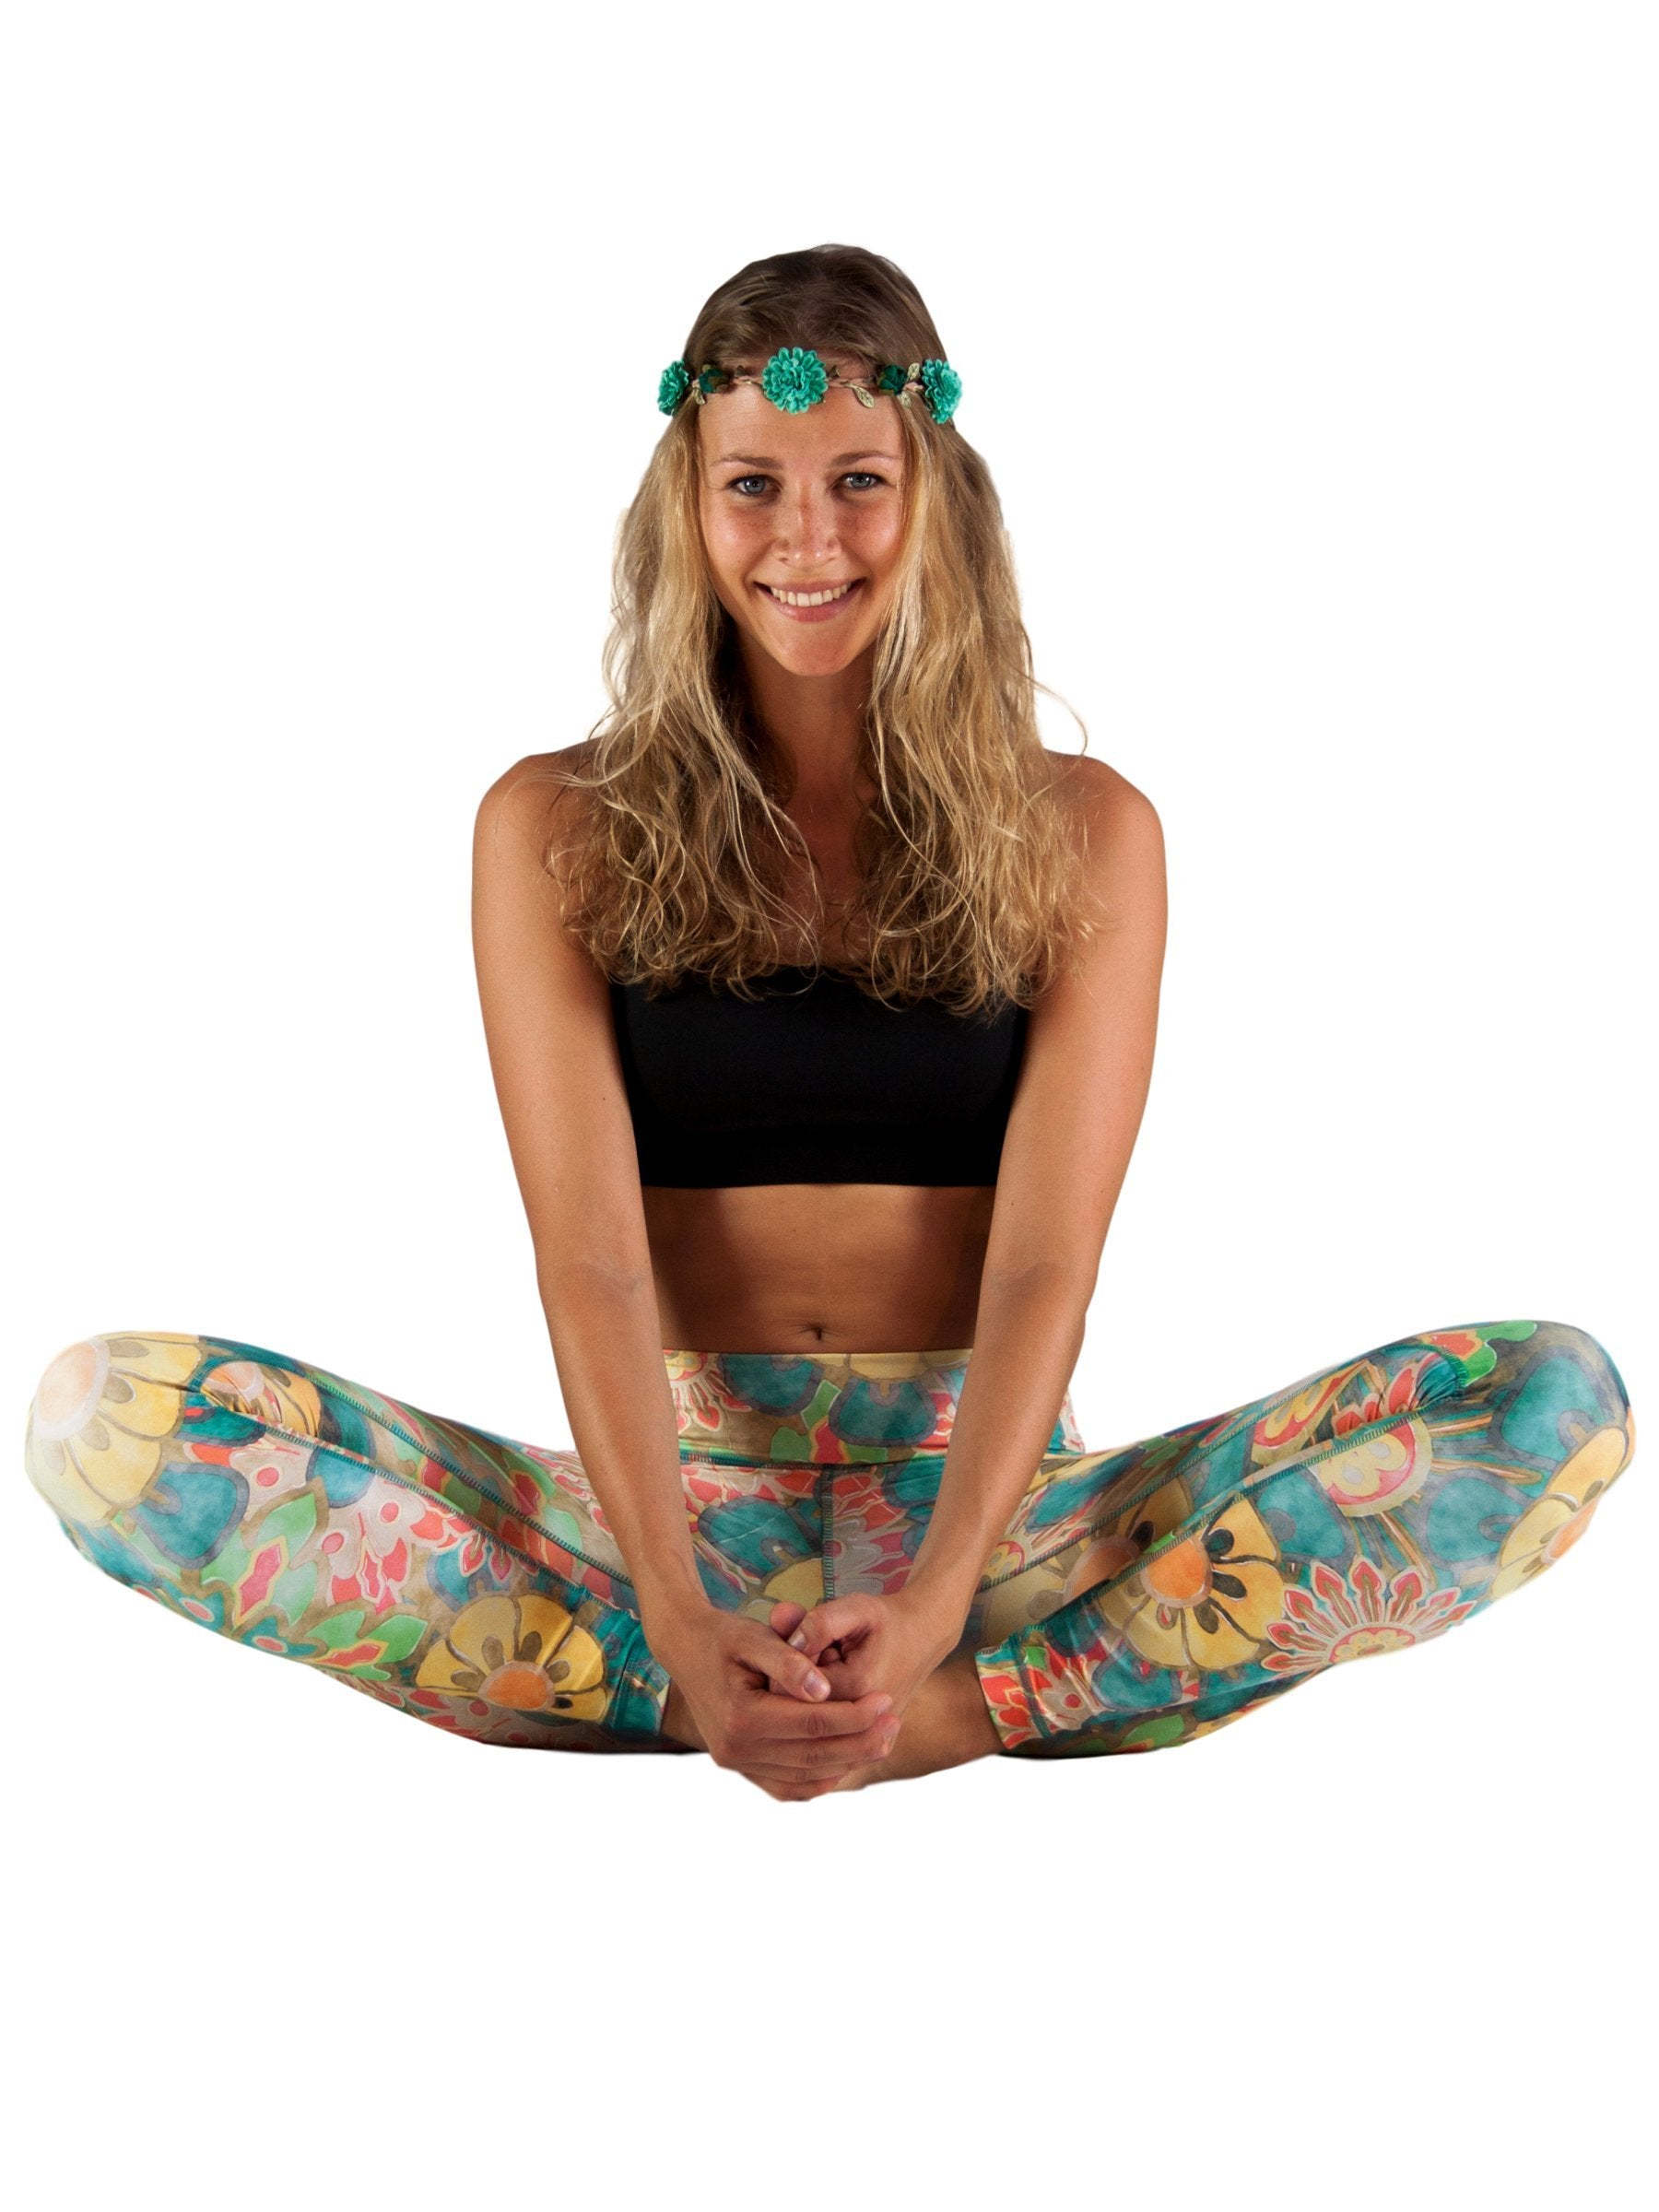 Coachella by Niyama - High Quality, Yoga Legging for Movement Artists.